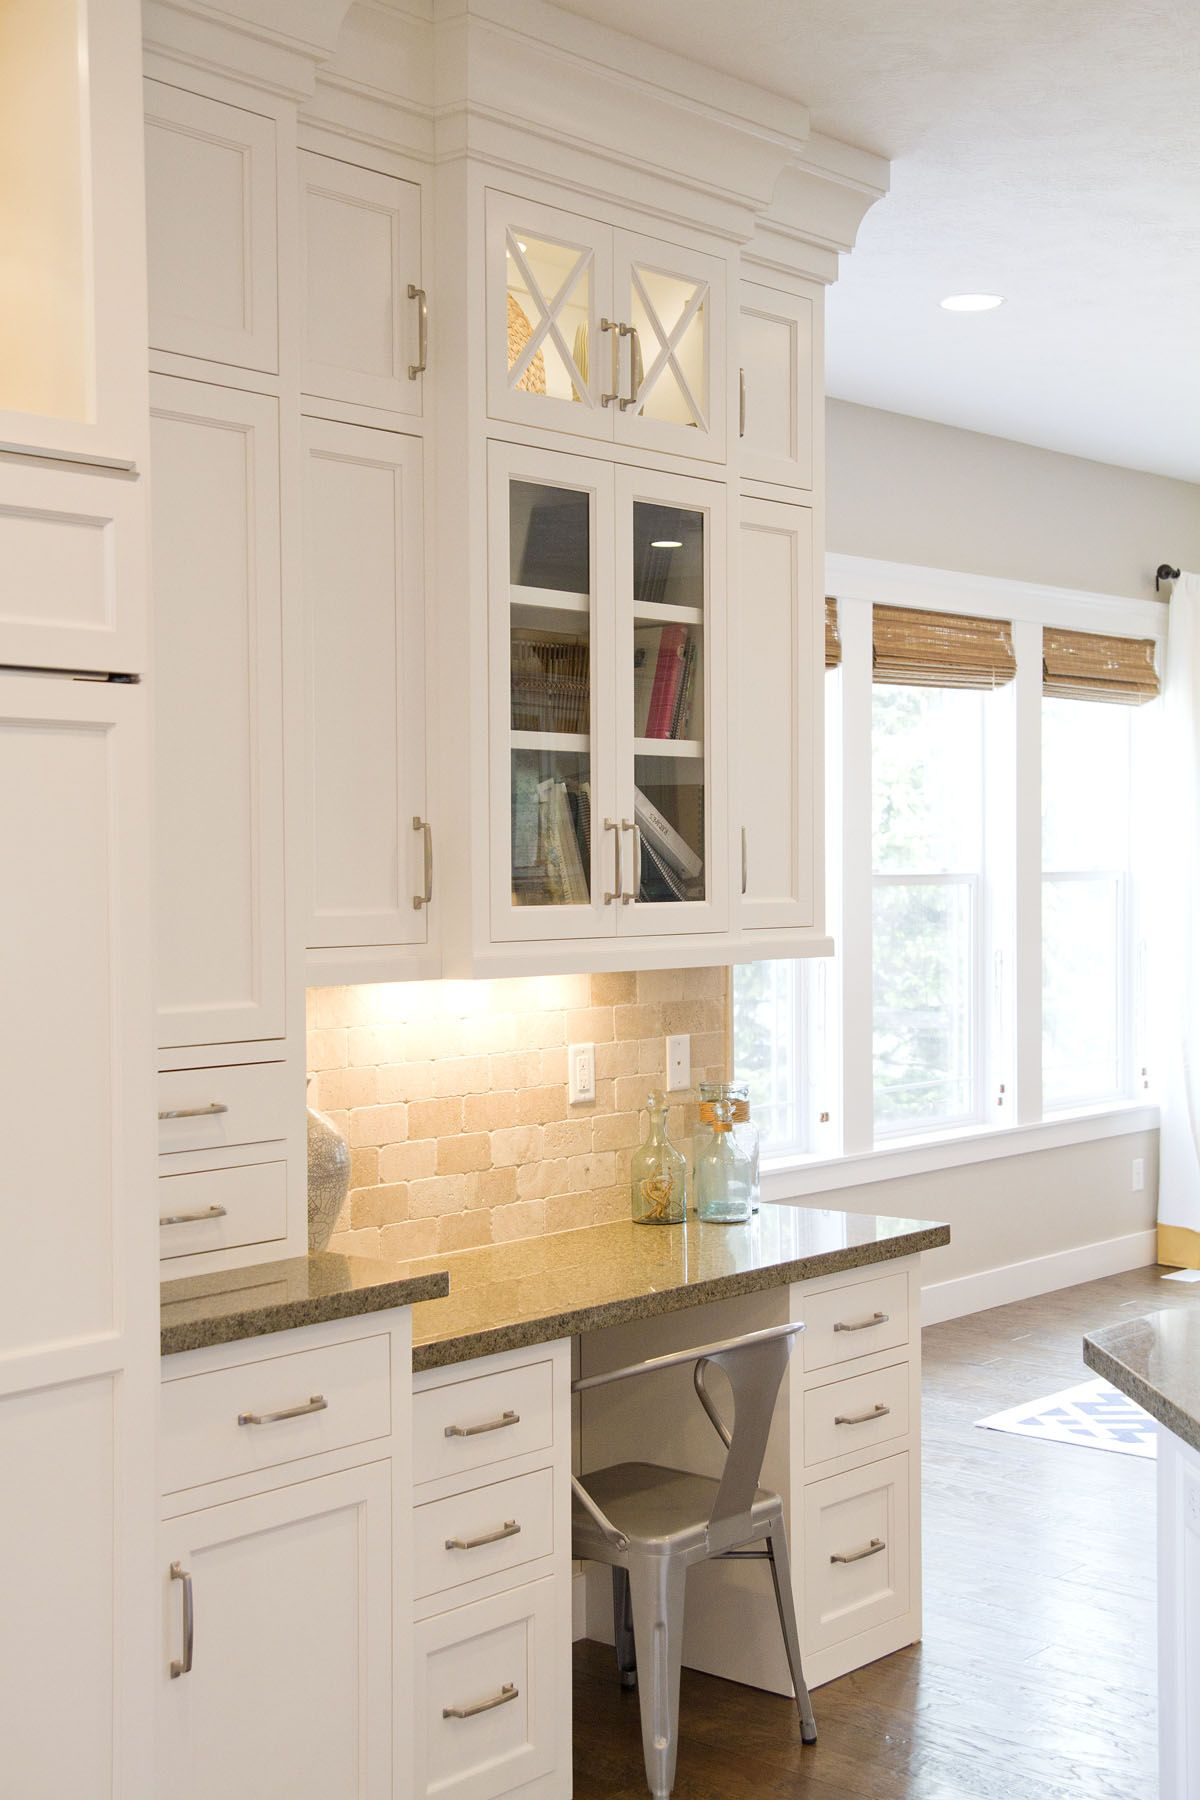 Kitchen Crown Moulding Kitchen Cabinetry Love The Crisscross Design Over The Glass Top